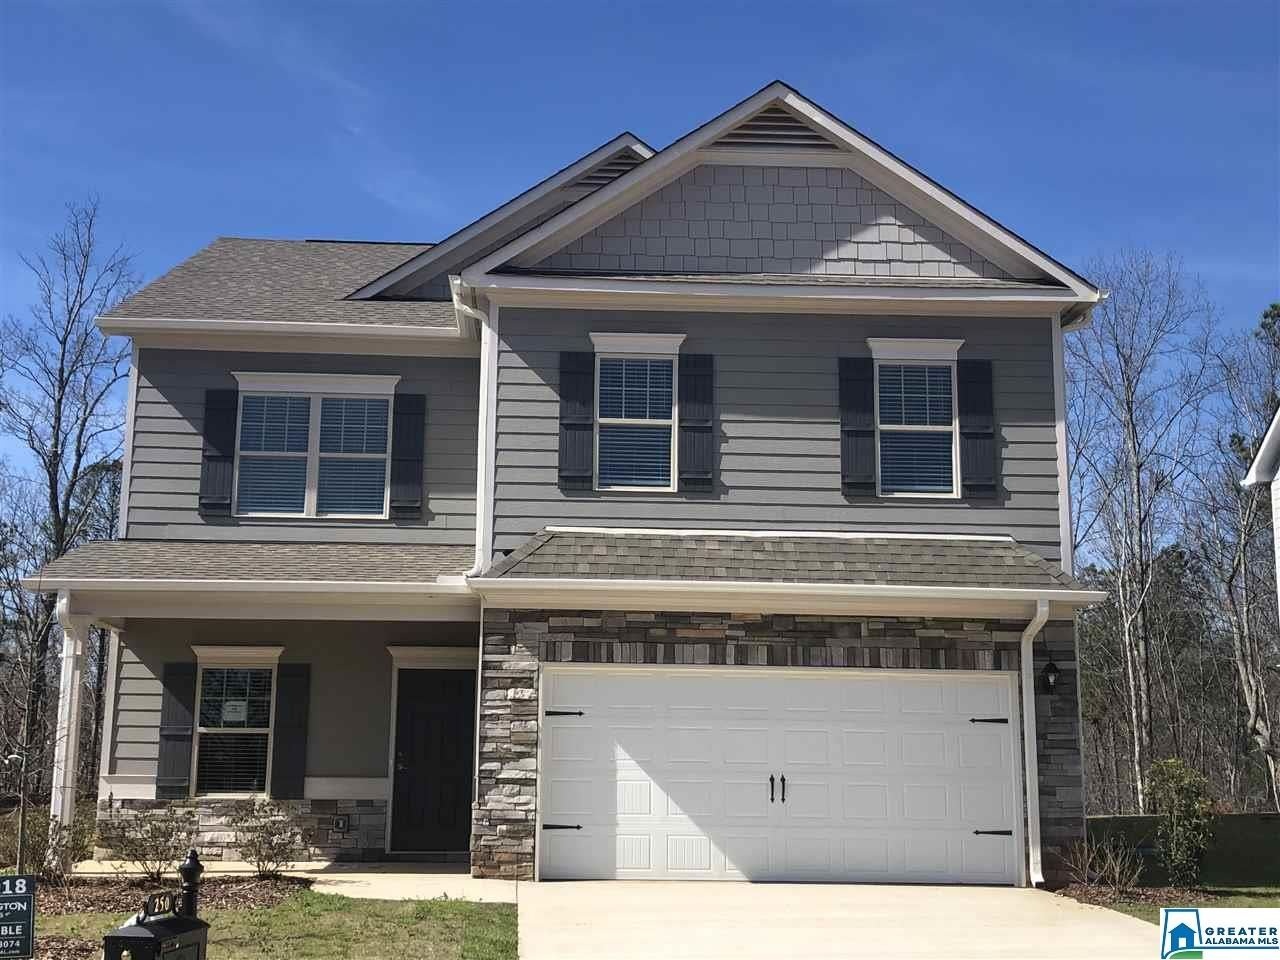 250 LAKERIDGE DR, Trussville, AL 35173 - #: 858617